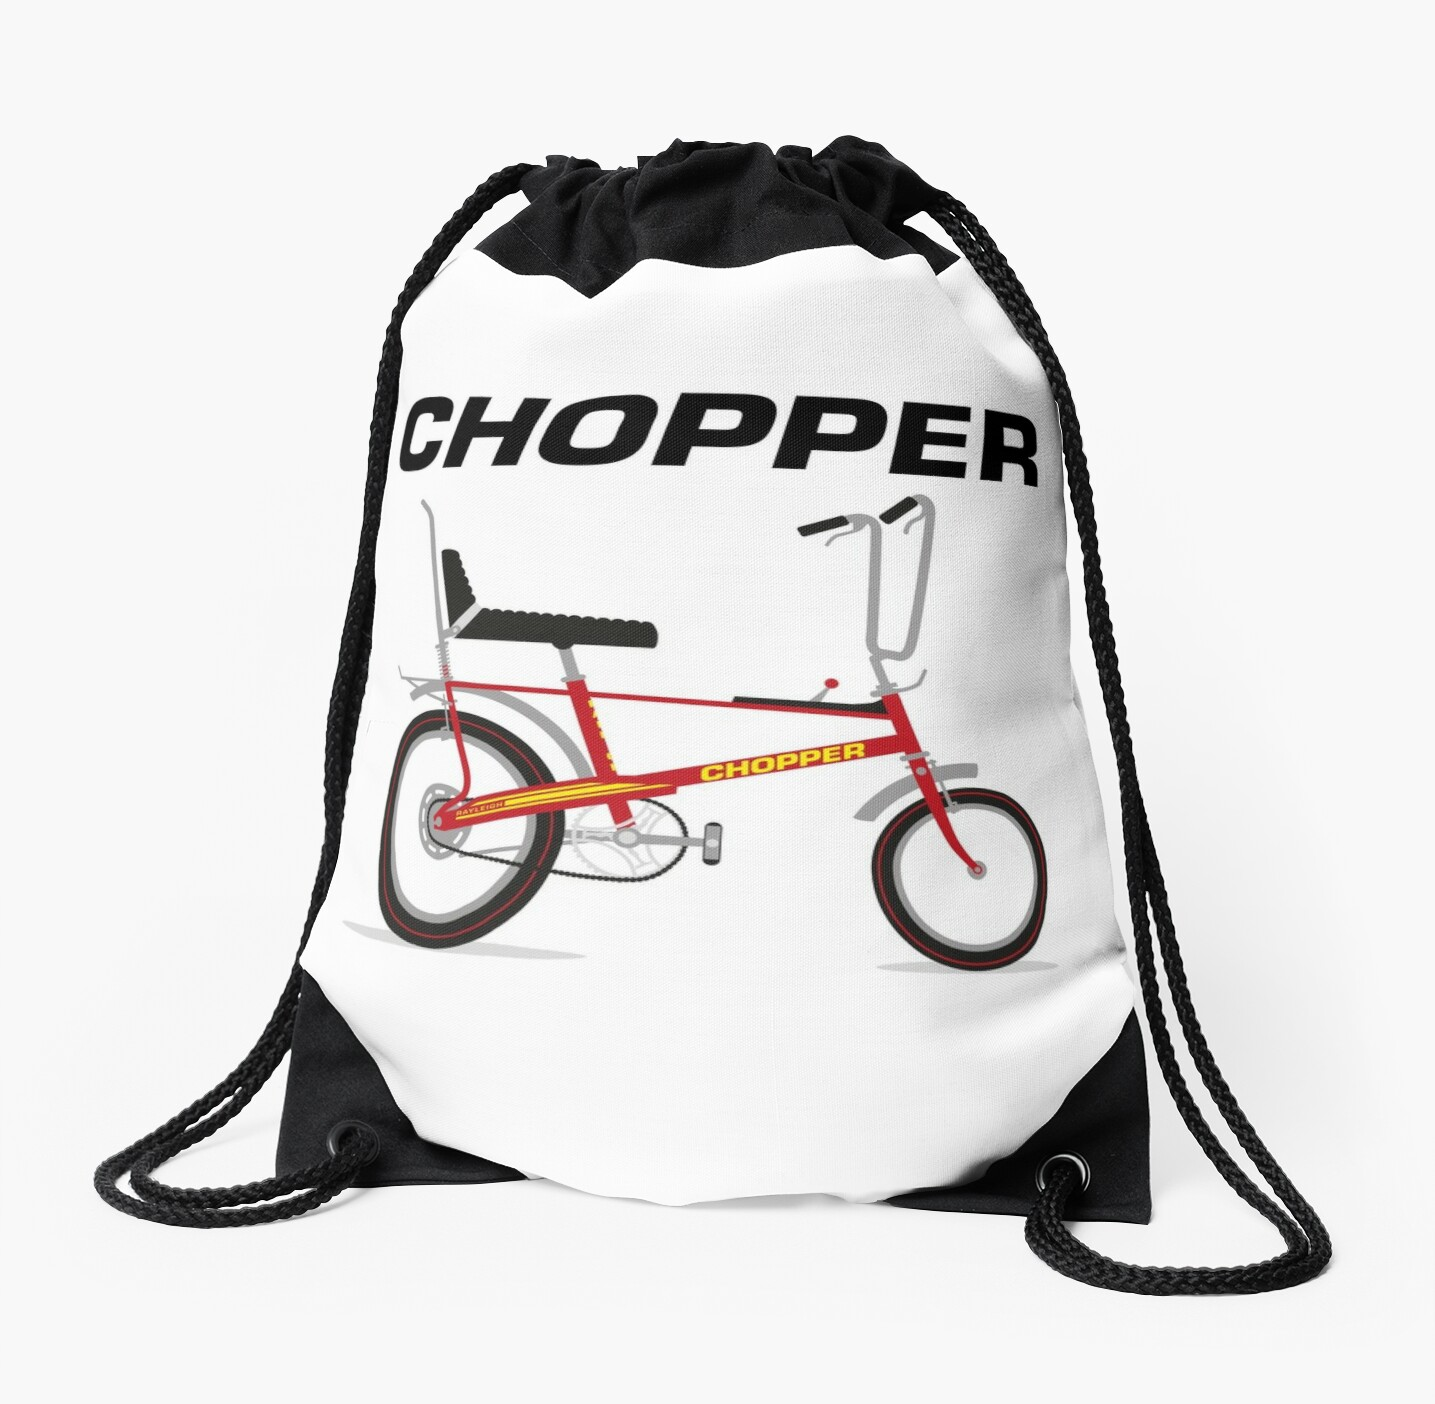 raleigh chopper drawstring bags by wiscan redbubble 1970s Bikes raleigh chopper by wiscan